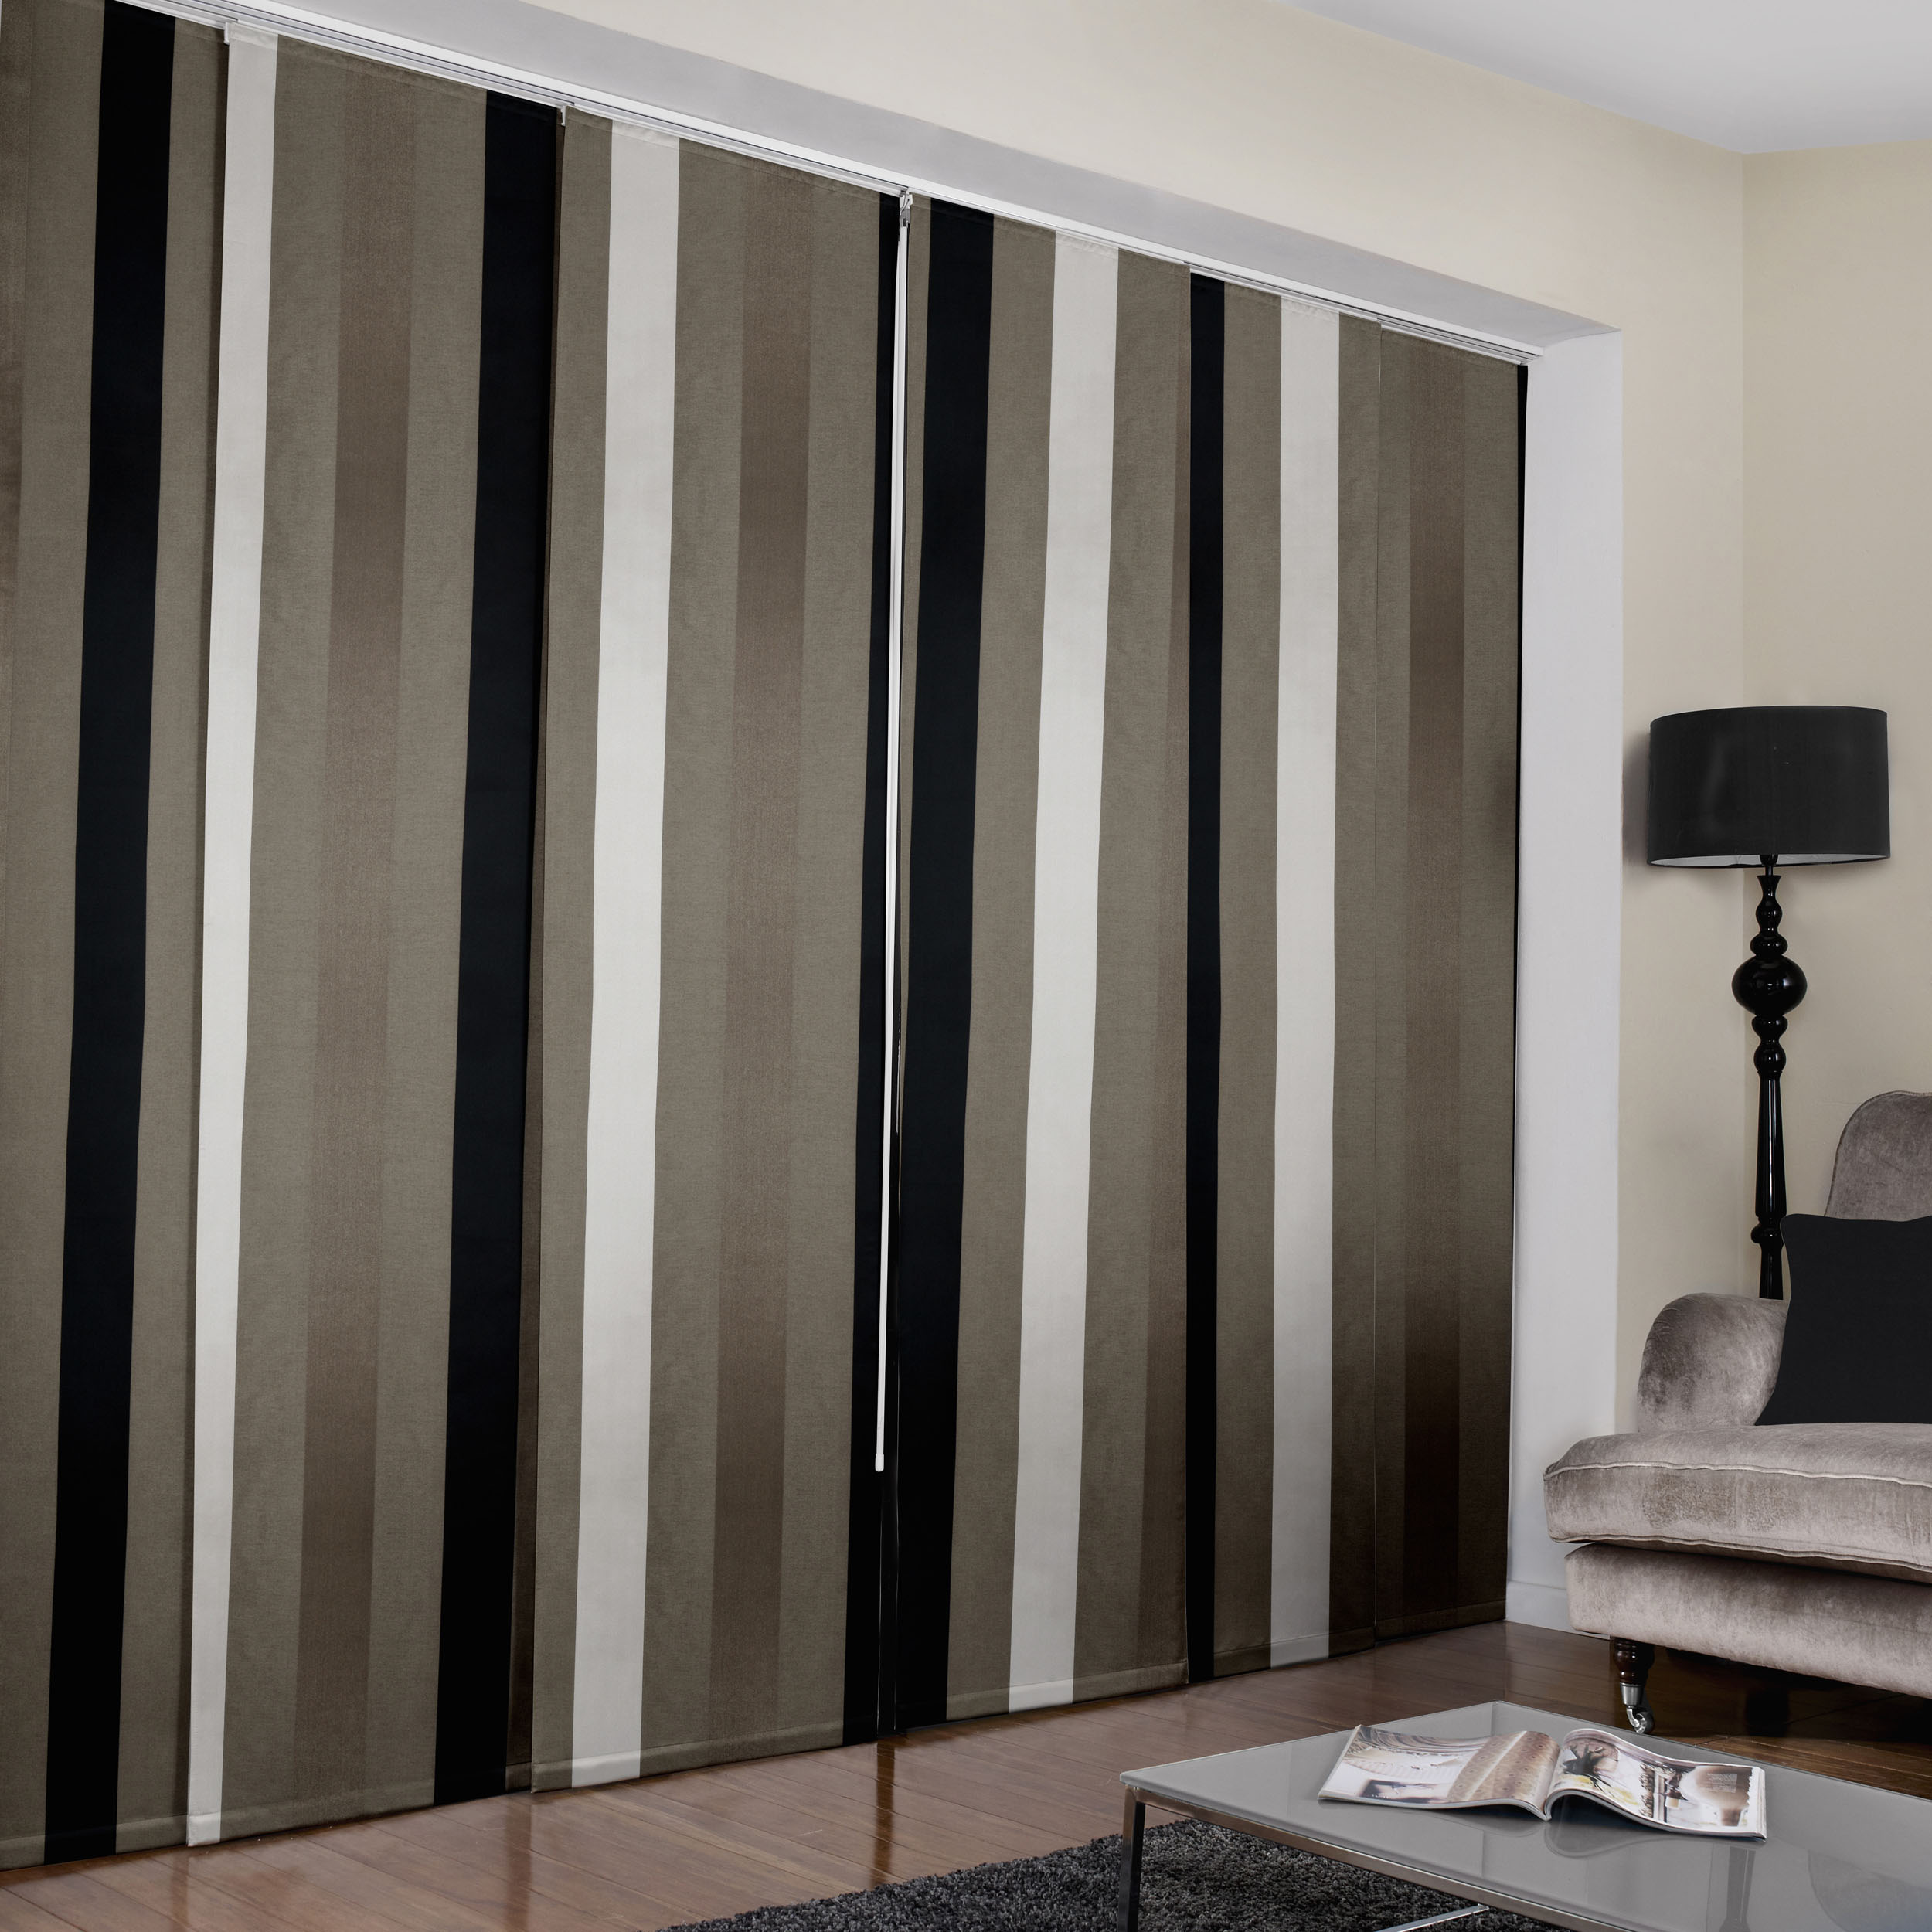 of blinds search wand google safety bay bathroom vertical with windows select full size track window